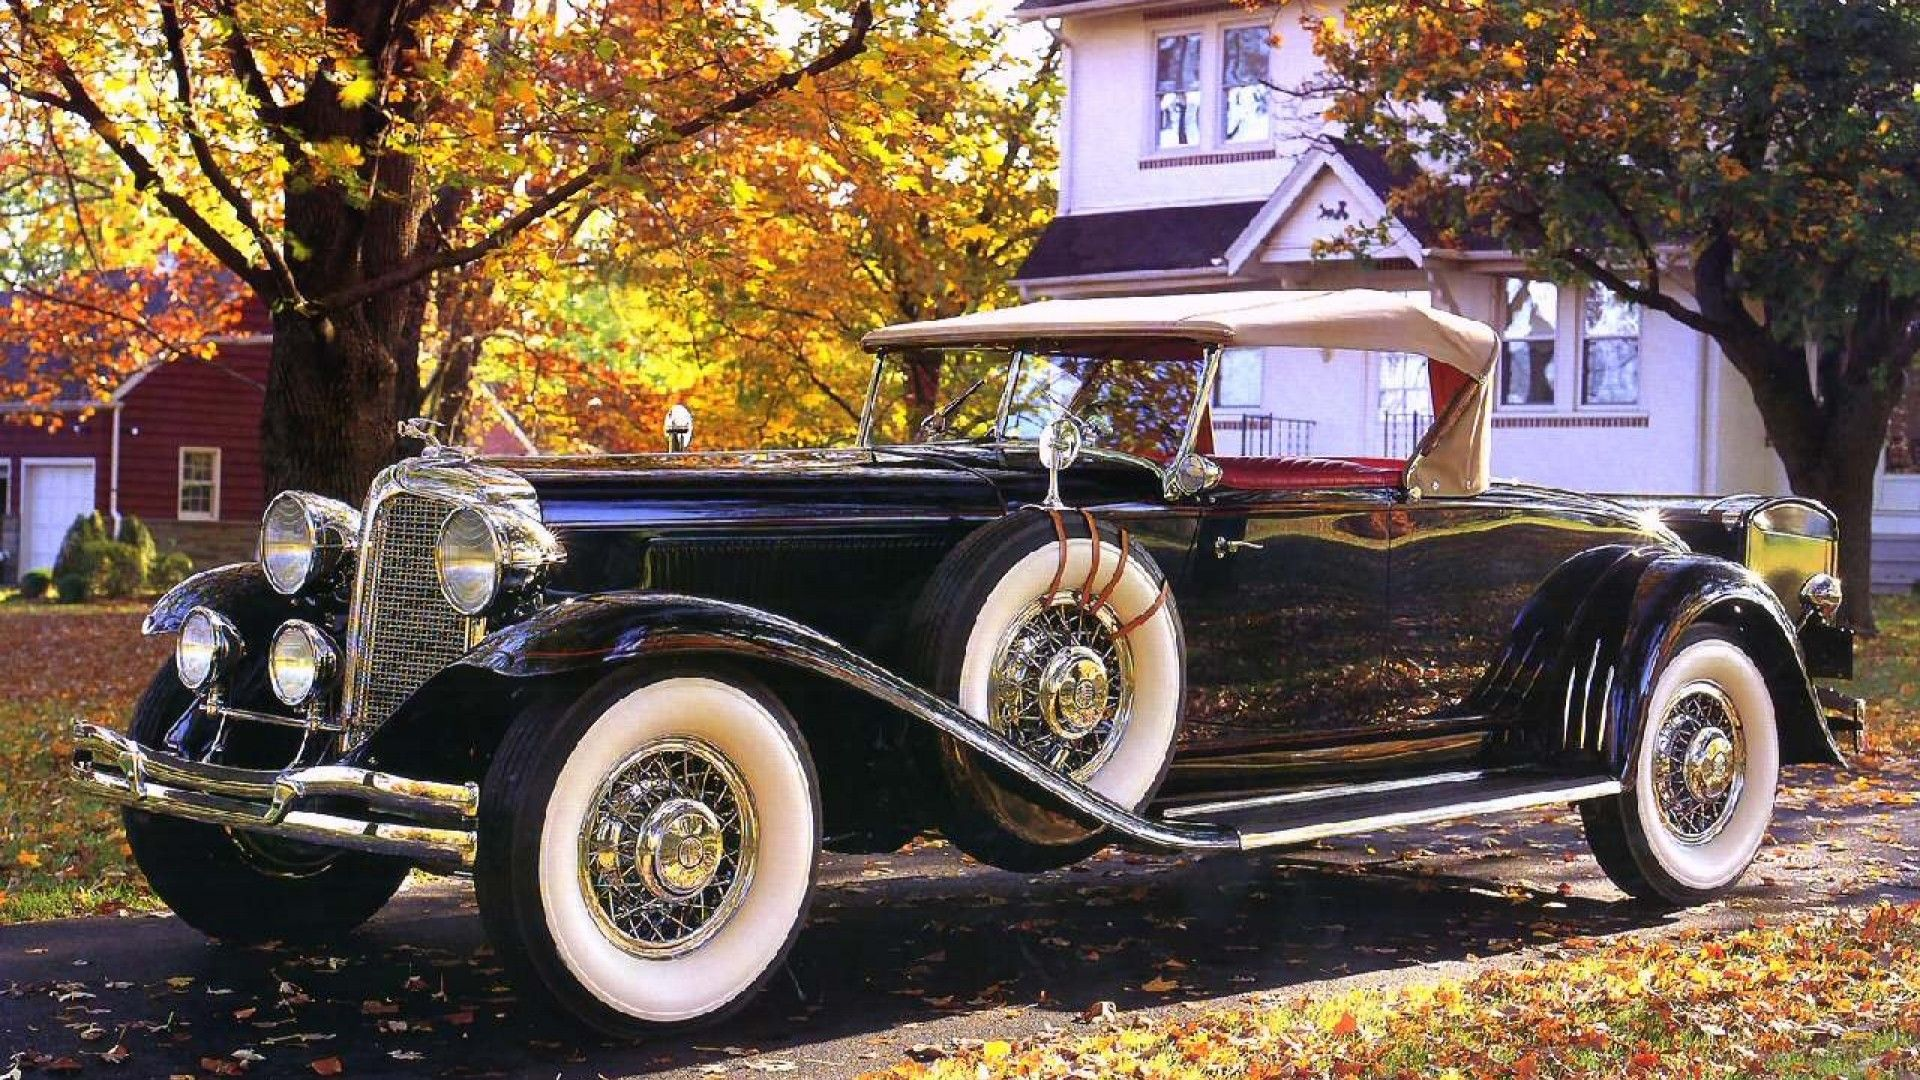 TBT > 1931 #Chrysler Visit http://www.northlanddodge.ca/ for more ...